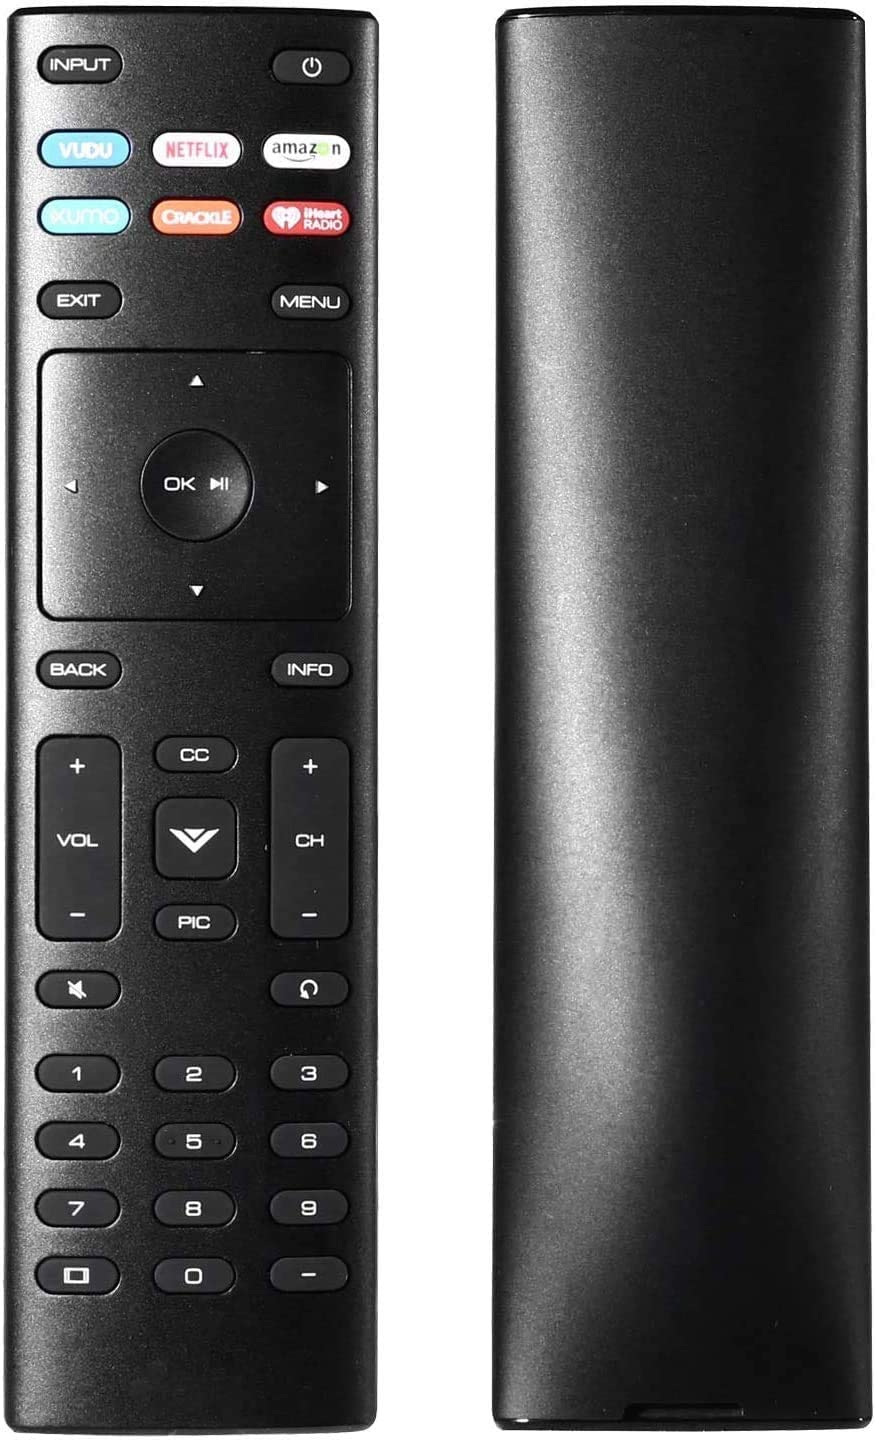 XRT136 Universal Replacement Remote Control Compatible with All Vizio Smart TV Include D-Series M-Series P-Series V-Series: Home Audio & Theater